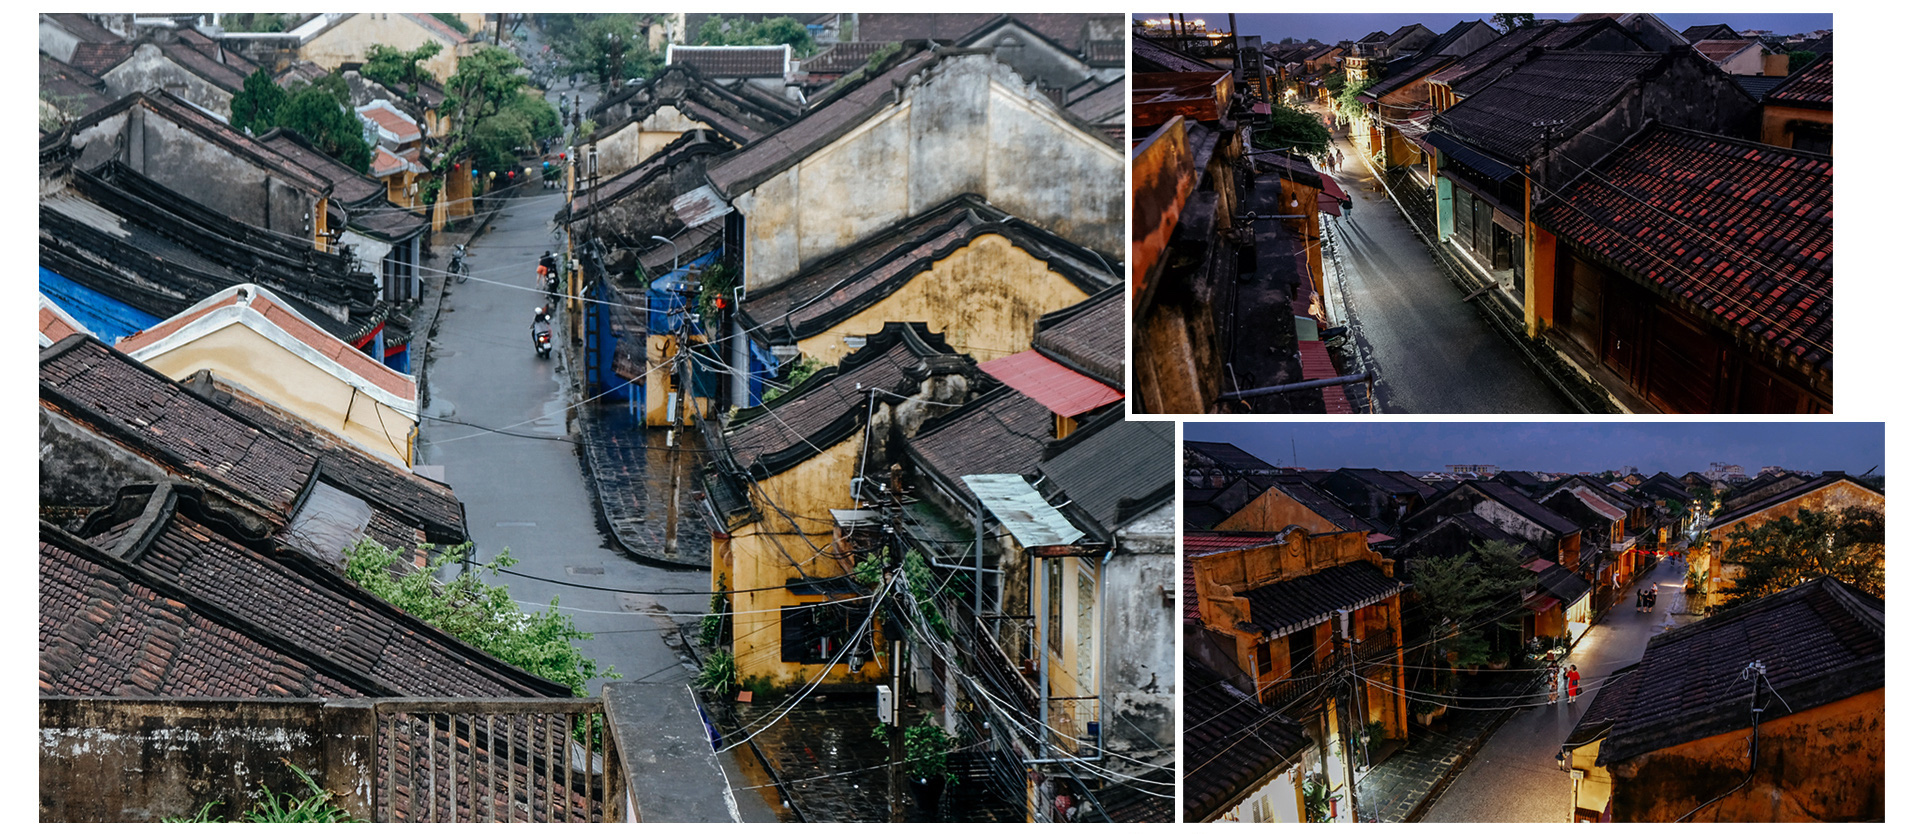 The streets of Hoi An City are empty in this photo taken on November 29